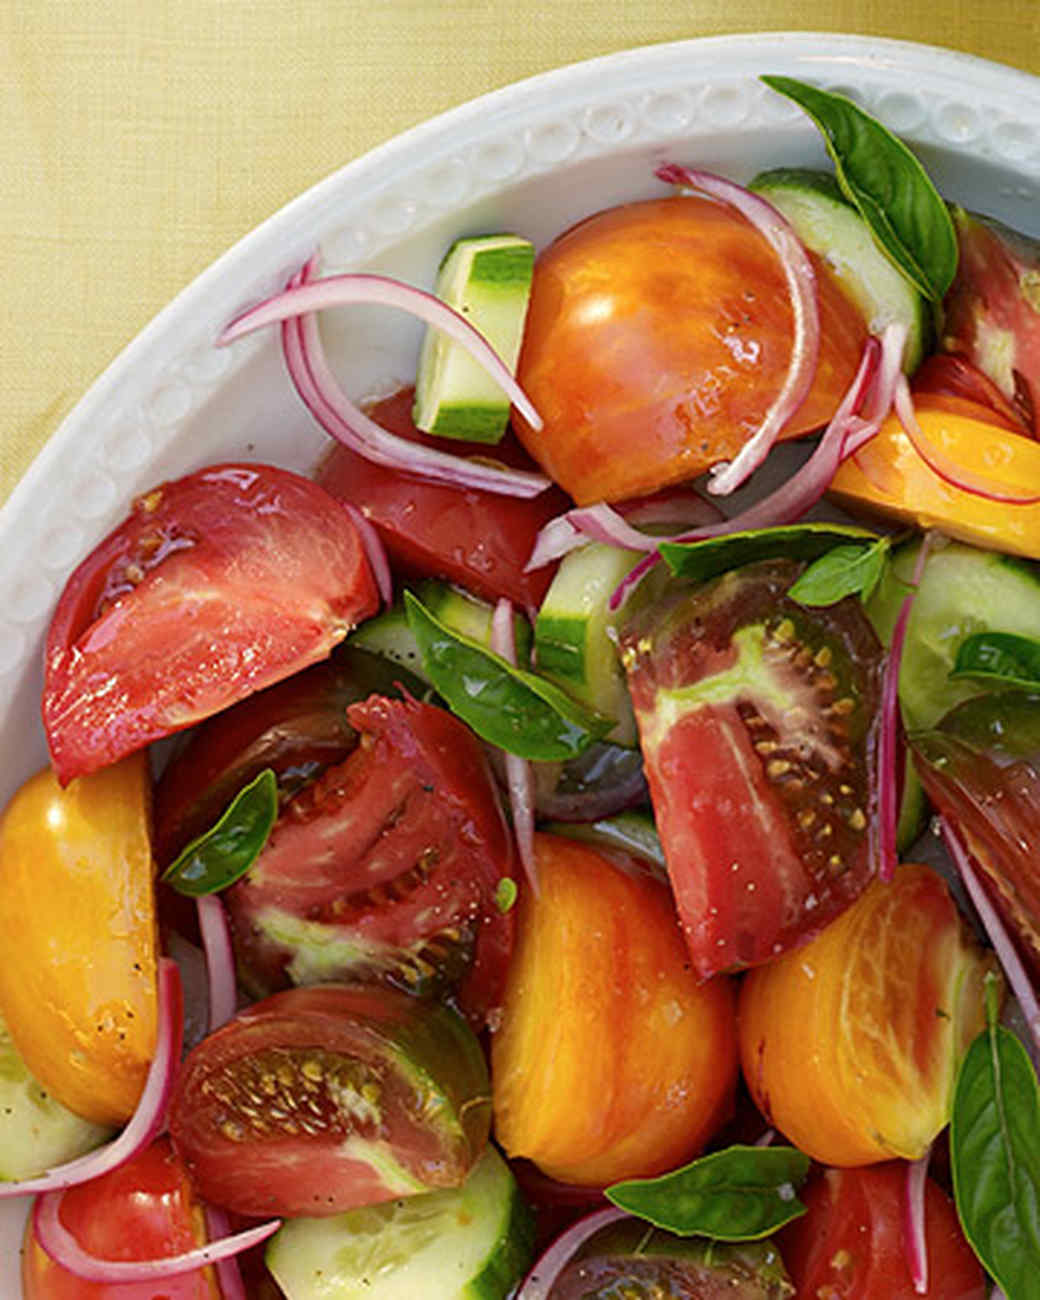 Tomato, Cucumber, and Pickled-Onion Salad